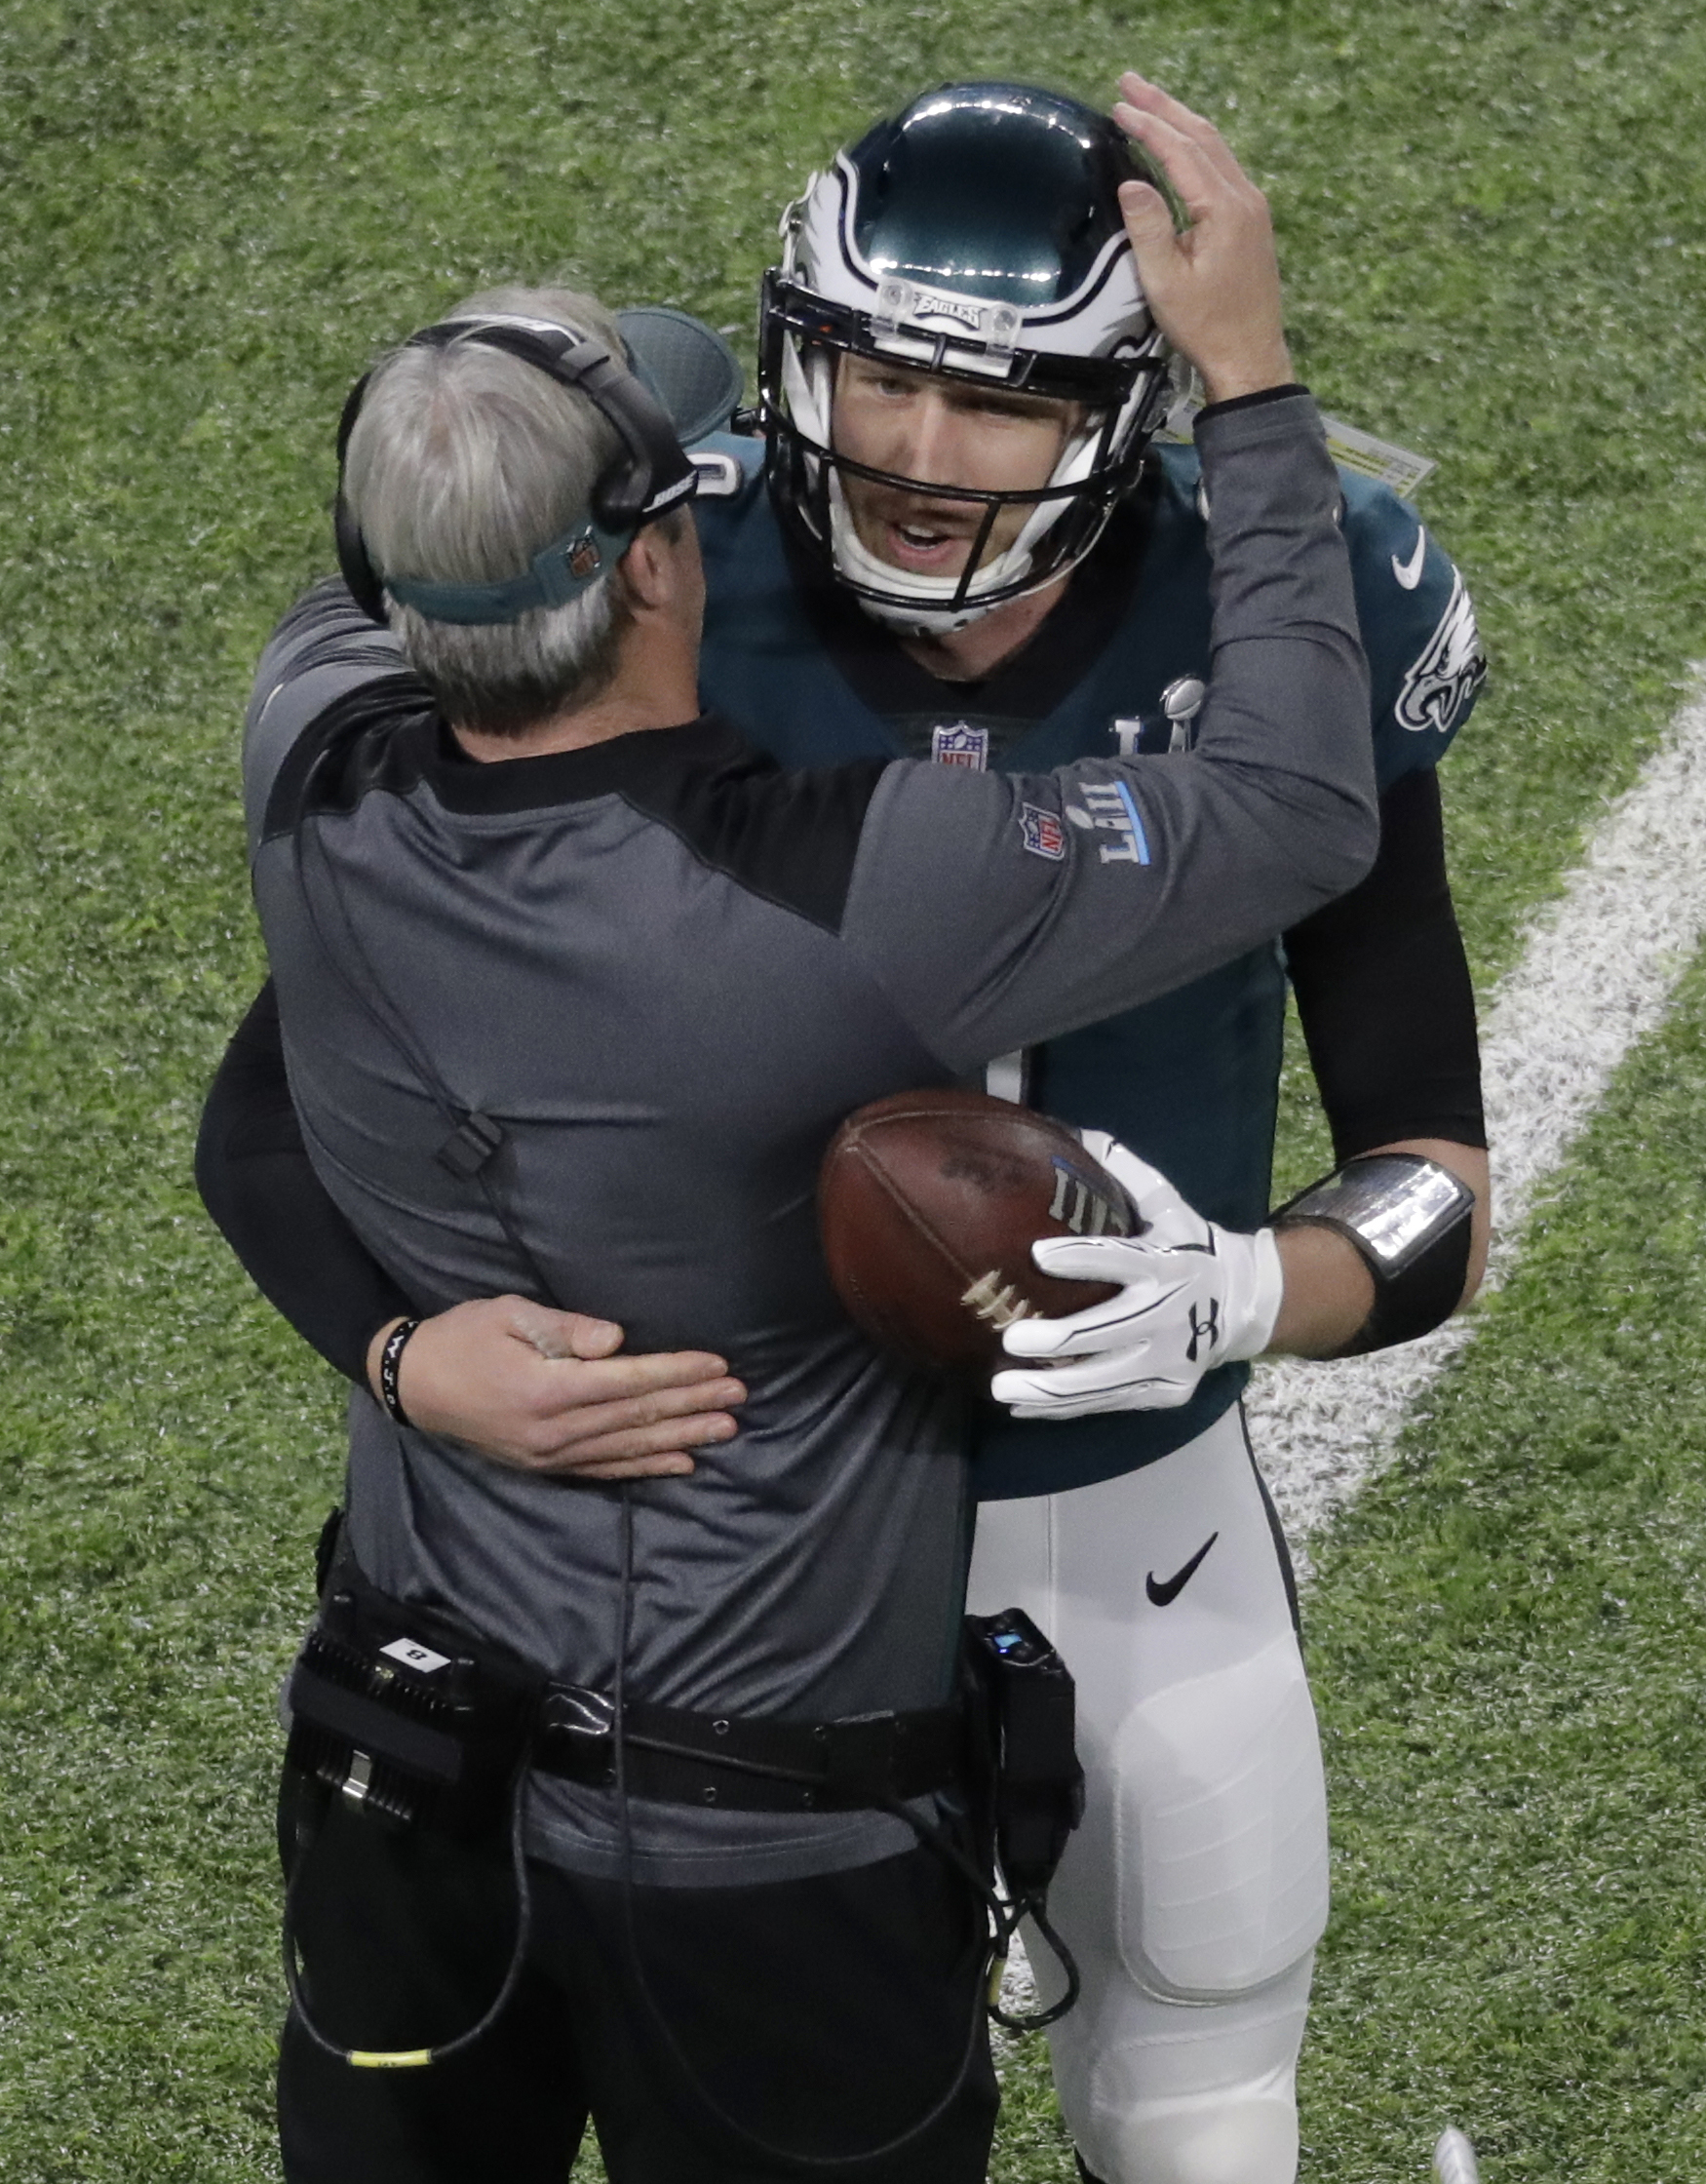 "<div class=""meta image-caption""><div class=""origin-logo origin-image ap""><span>AP</span></div><span class=""caption-text"">Philadelphia Eagles quarterback Nick Foles celebrates with Eagles head coach Doug Pederson after scoring a touchdown during the first half. (AP Photo/Eric Gay)</span></div>"